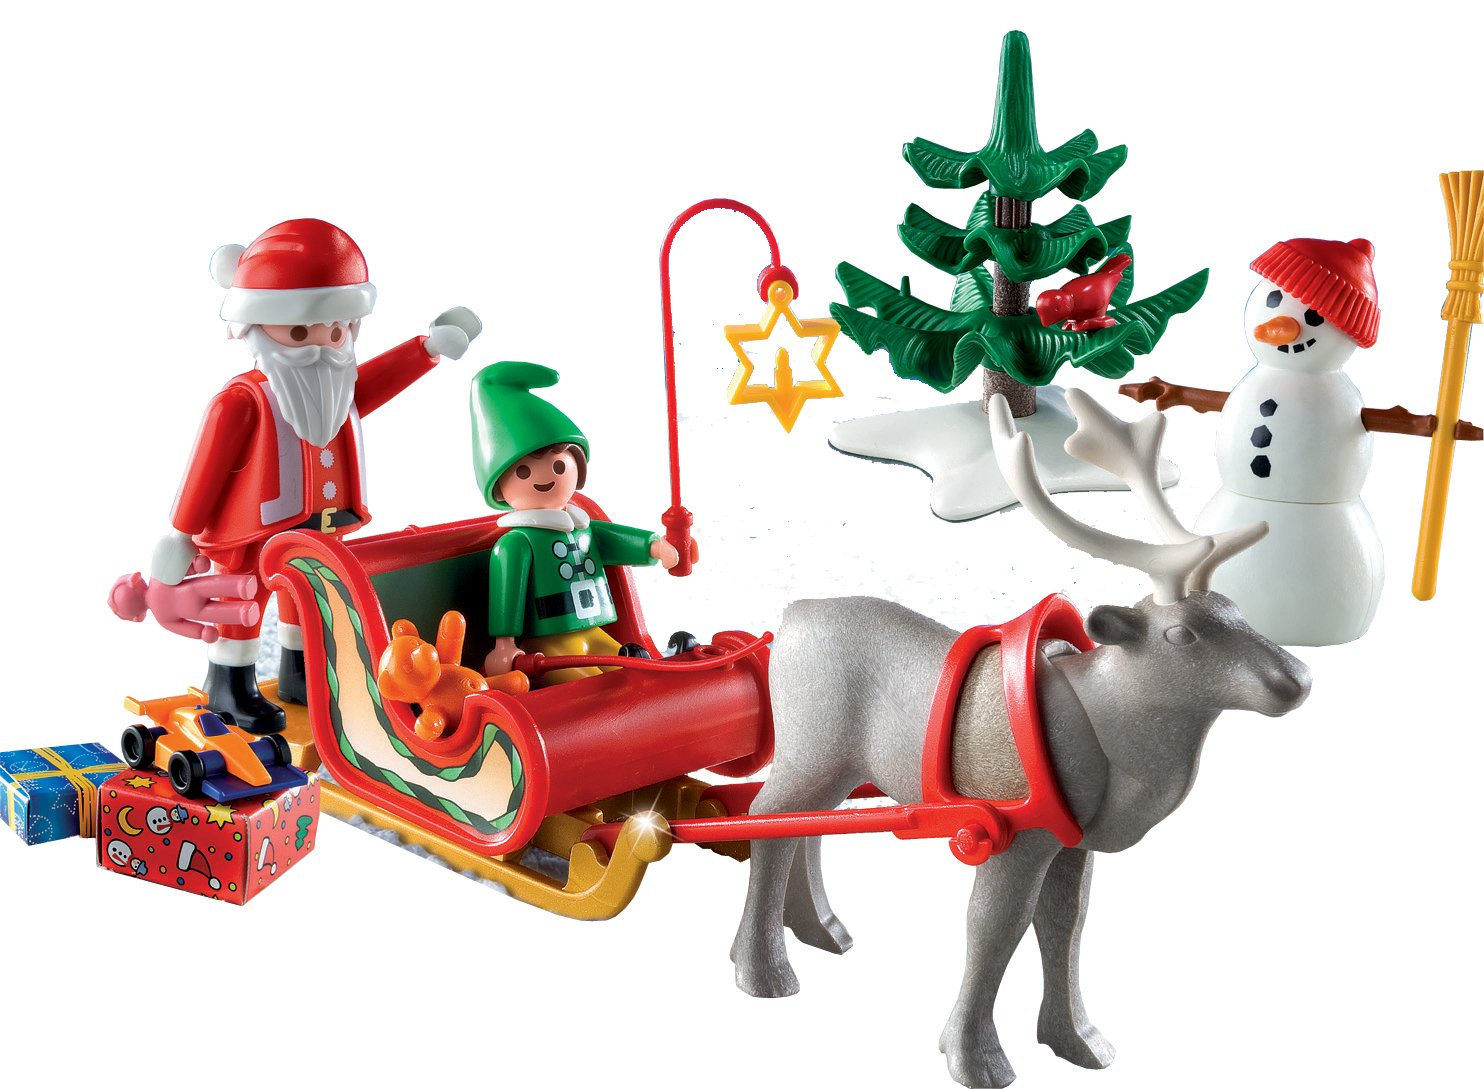 Details about PLAYMOBIL Christmas Holiday Carrying Case Play set Santa ...